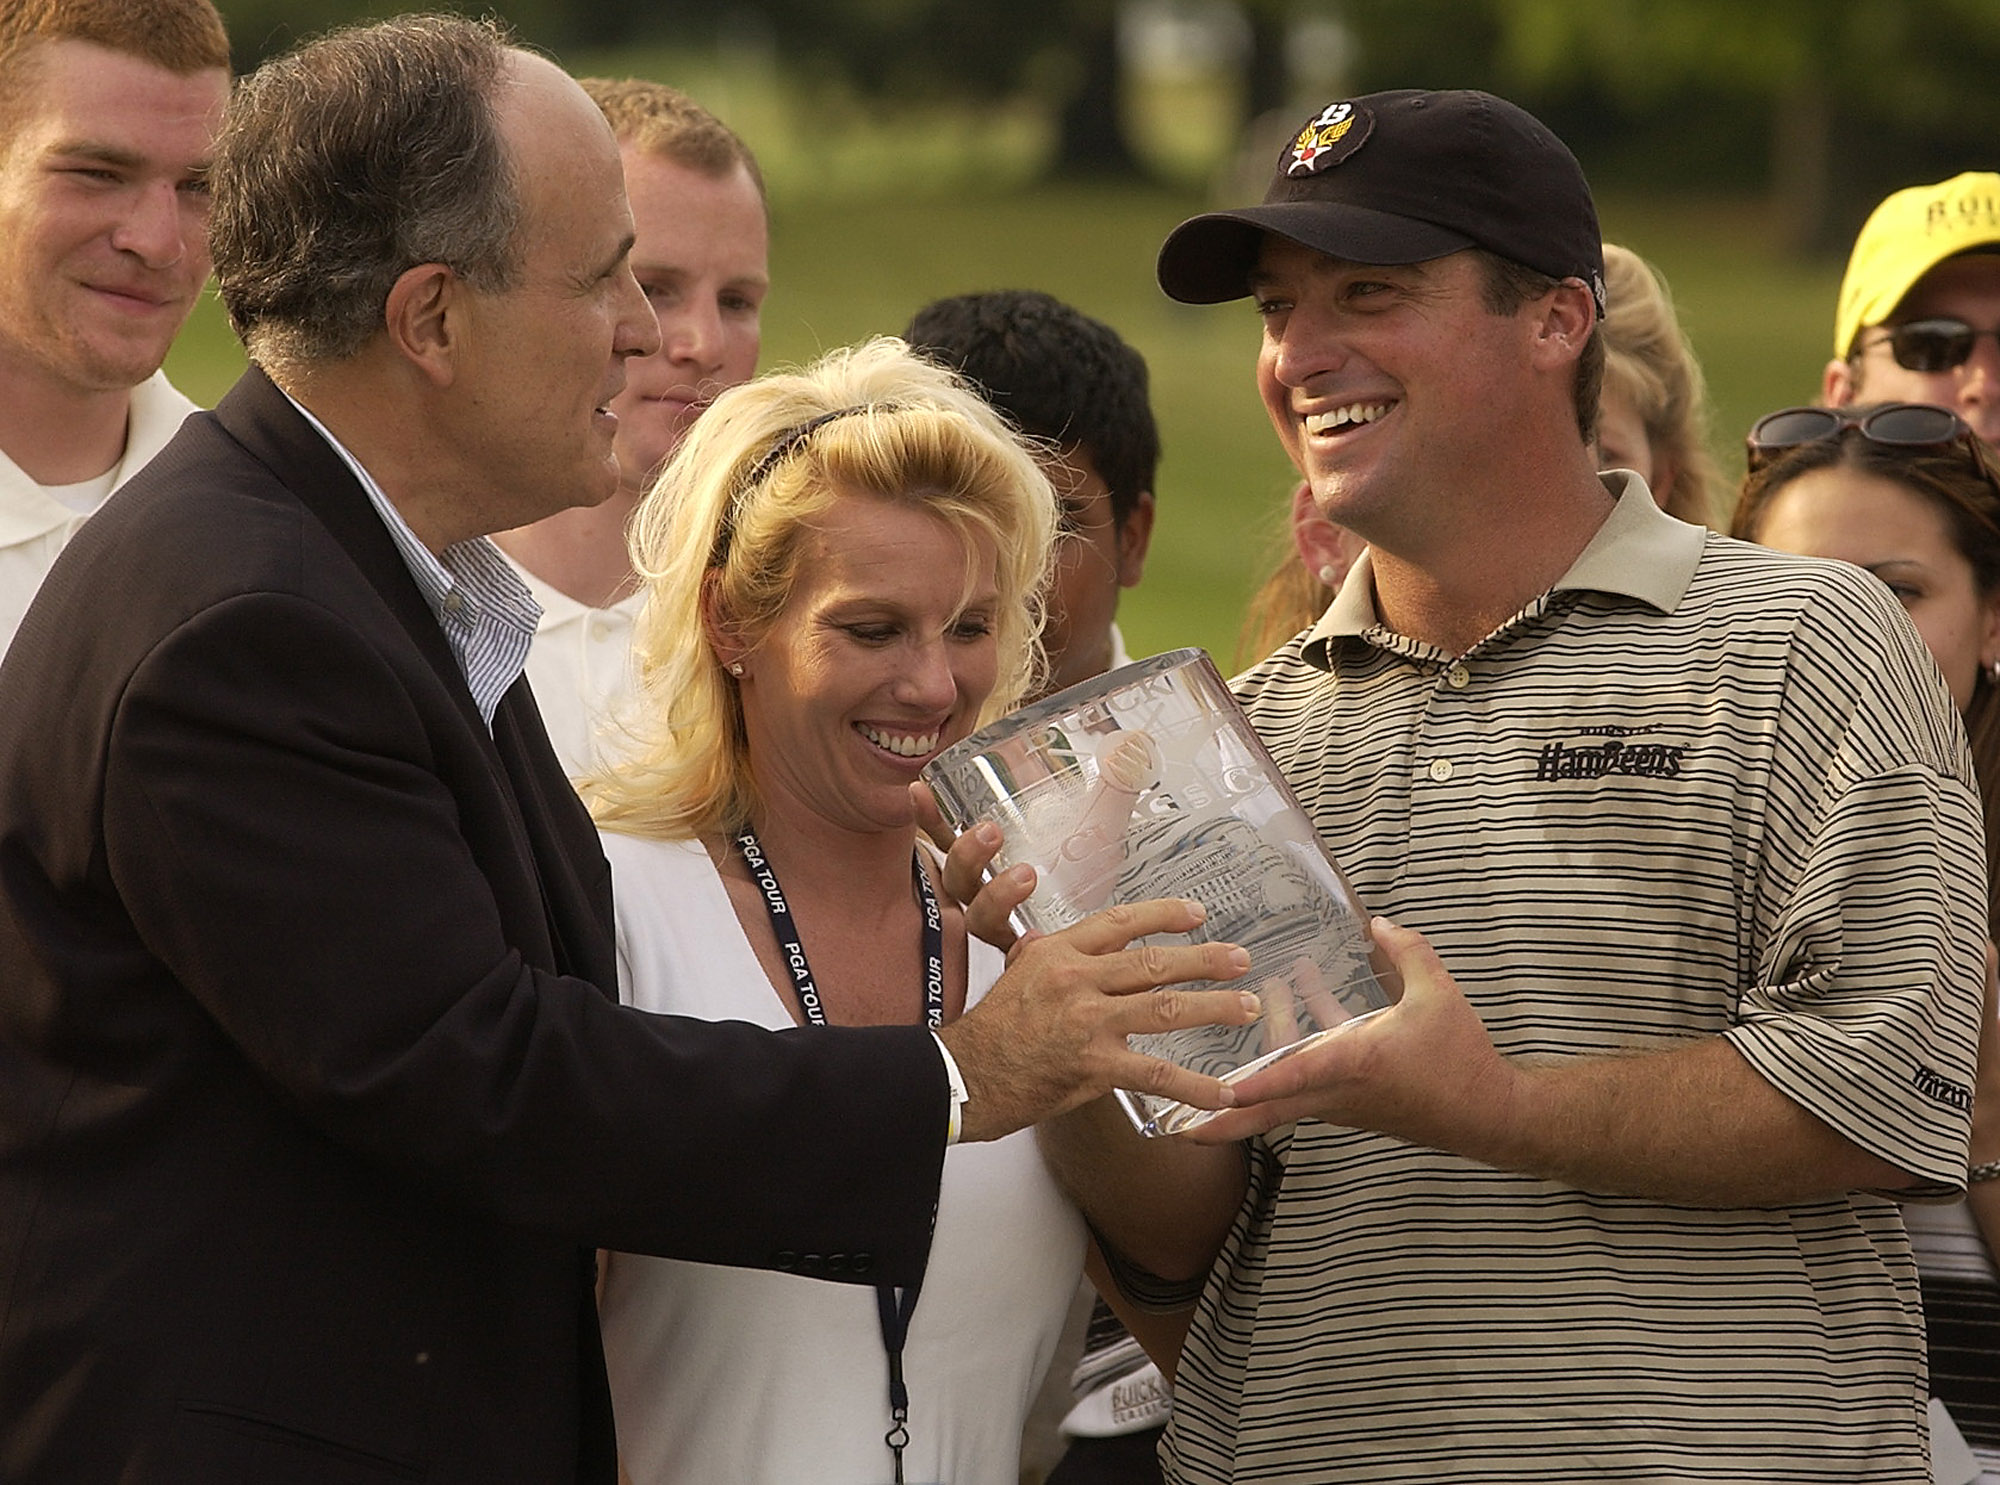 Chris Smith is presented with the trophy by former New York City Mayor Rudy Giuliani after winning the 2002 Buick Classic. His wife, Beth, looks on